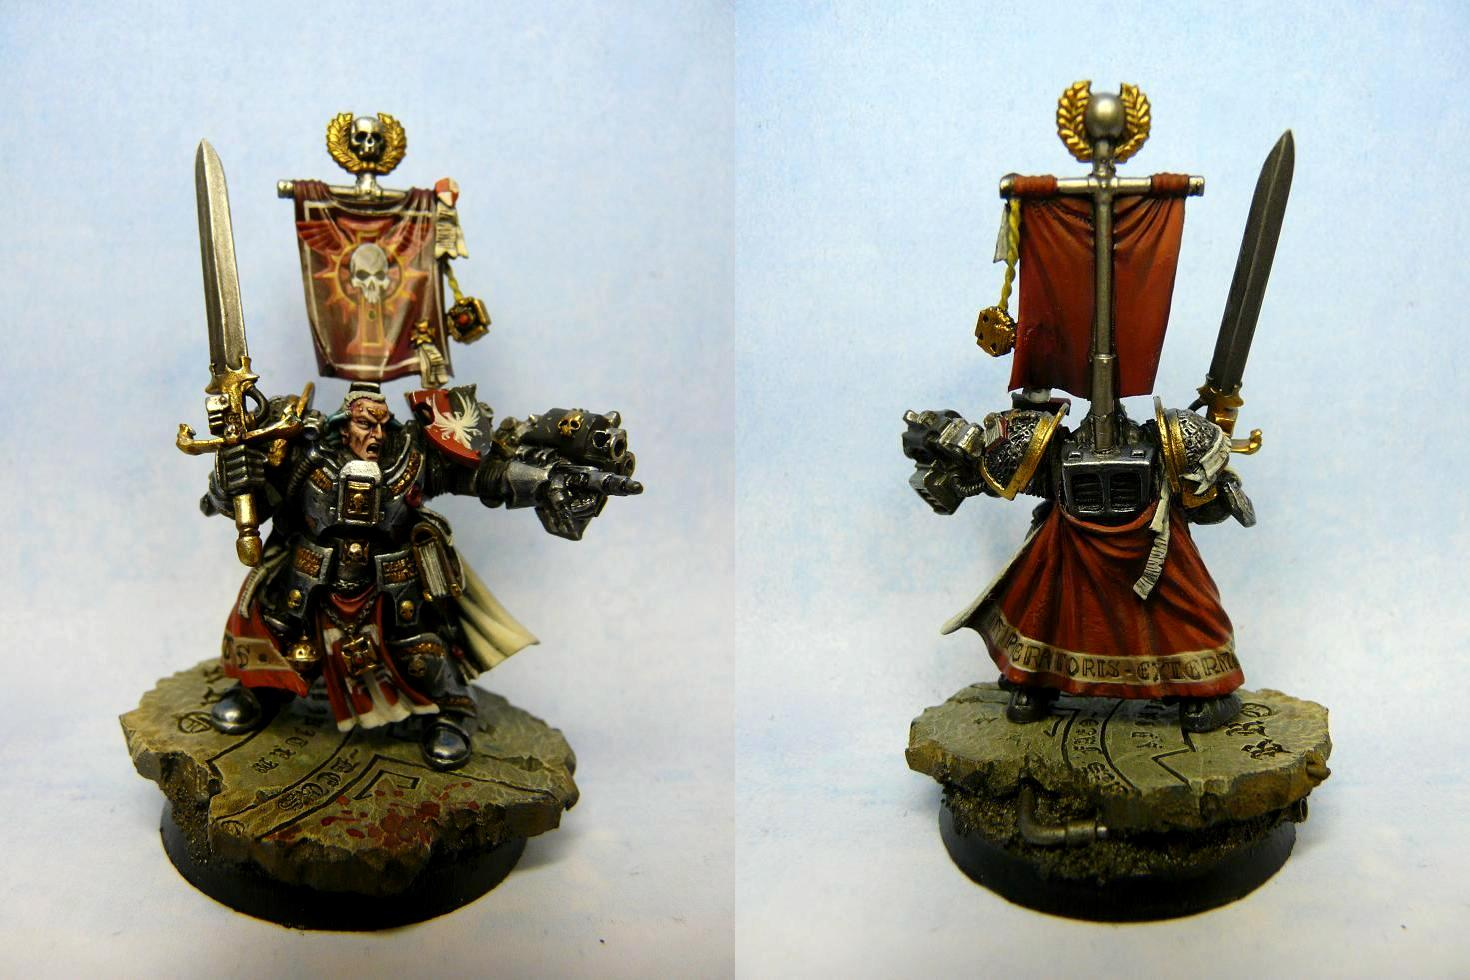 Grey Knights, Inquisition, Inquisitor, Special Character, Warhammer 40,000